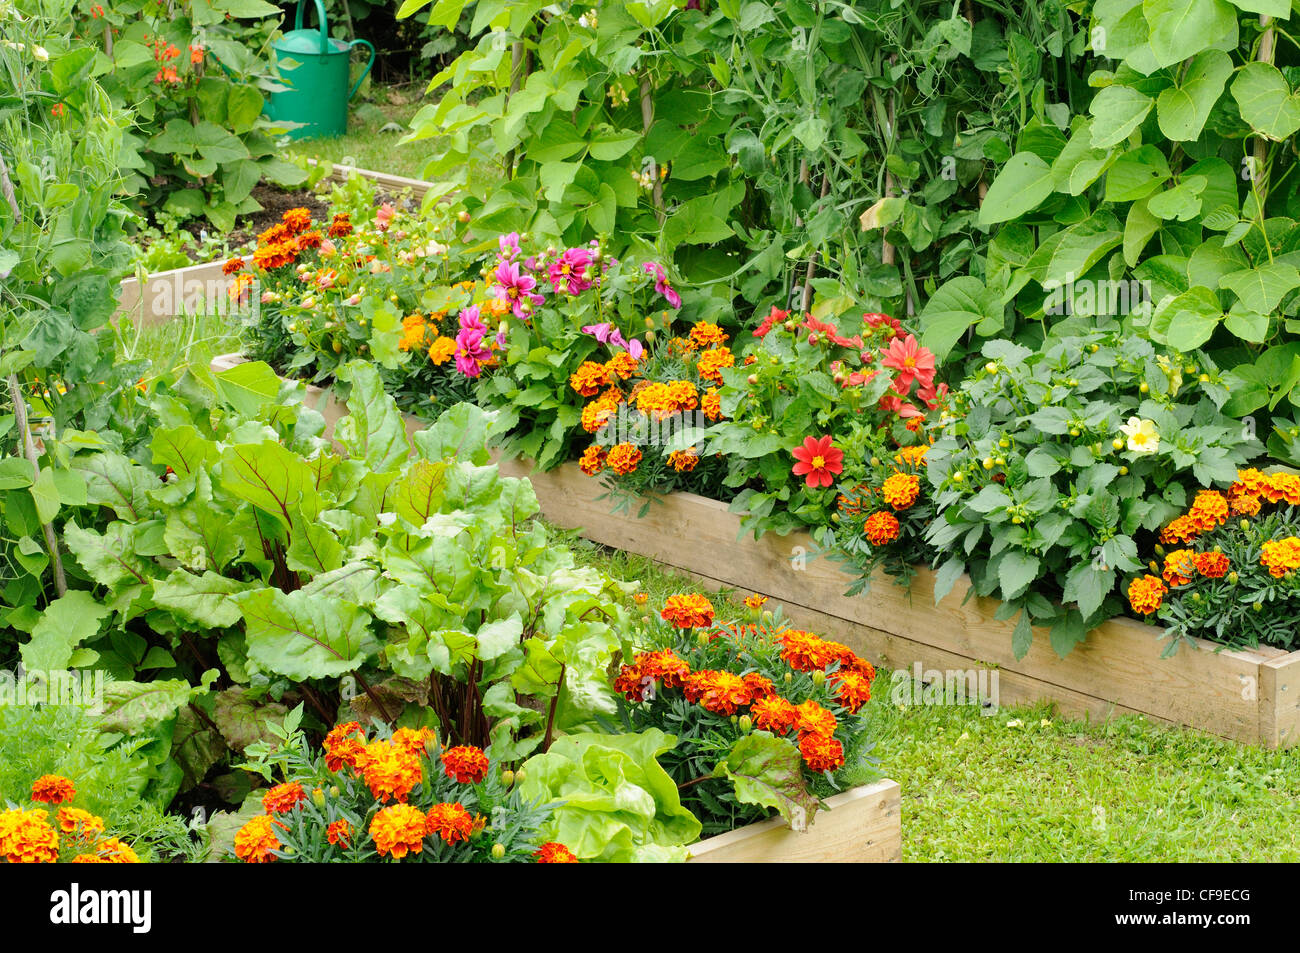 Summer garden with mixed vegetable and flower raised beds uk june stock photo royalty free - Mixed style gardens ...